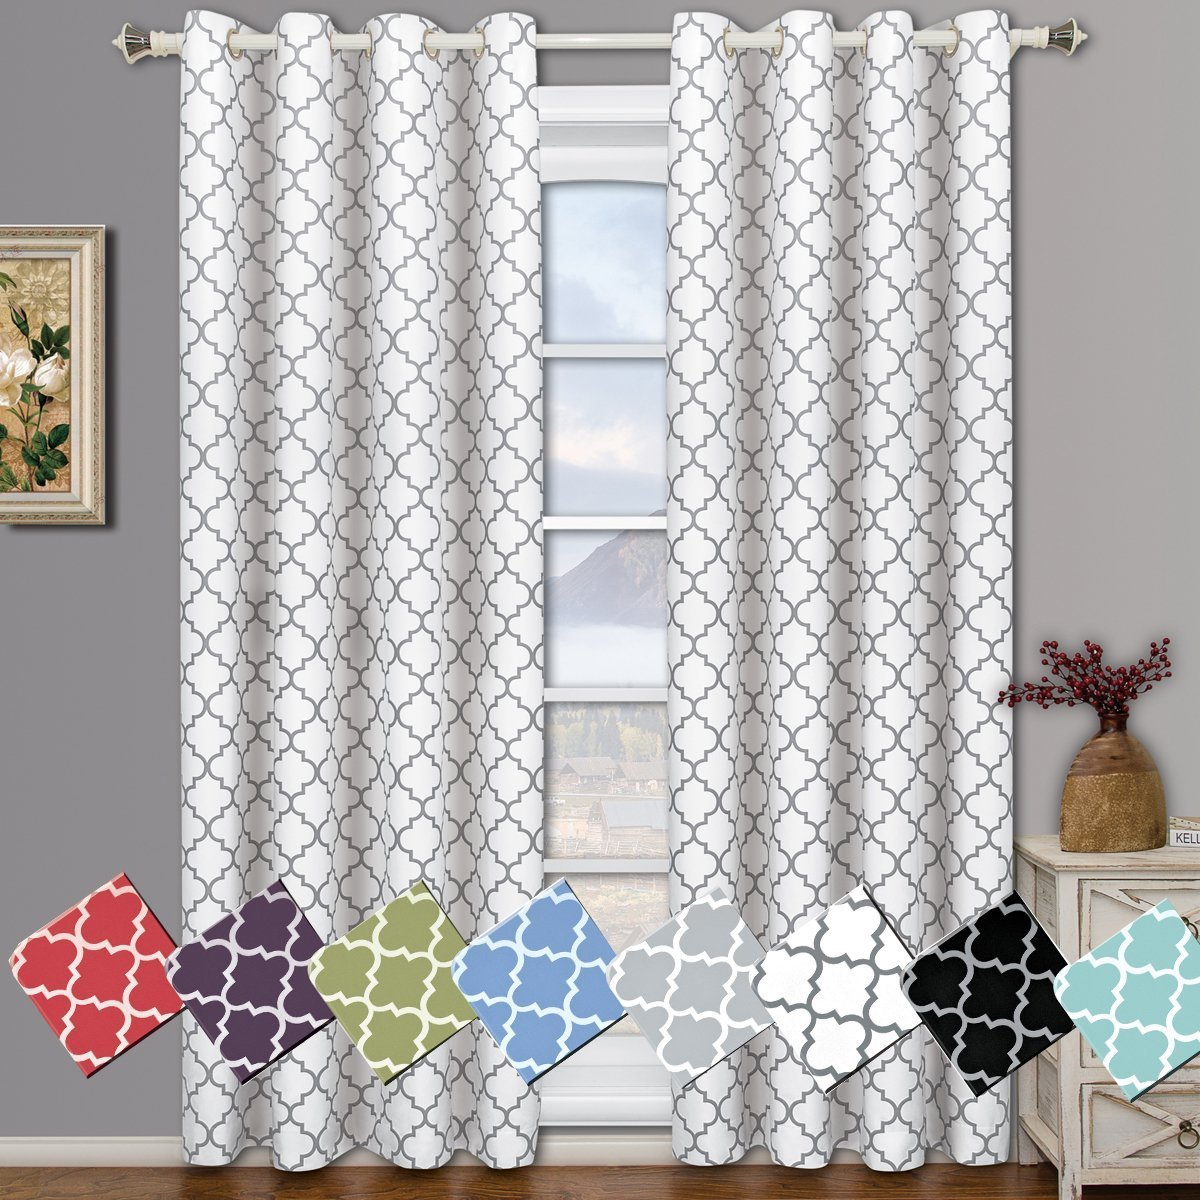 Meridian White Grommet Room Darkening Window Curtain Panels, Pair / Set of 2 Panels, 52x108 inches Each, by Royal Hotel